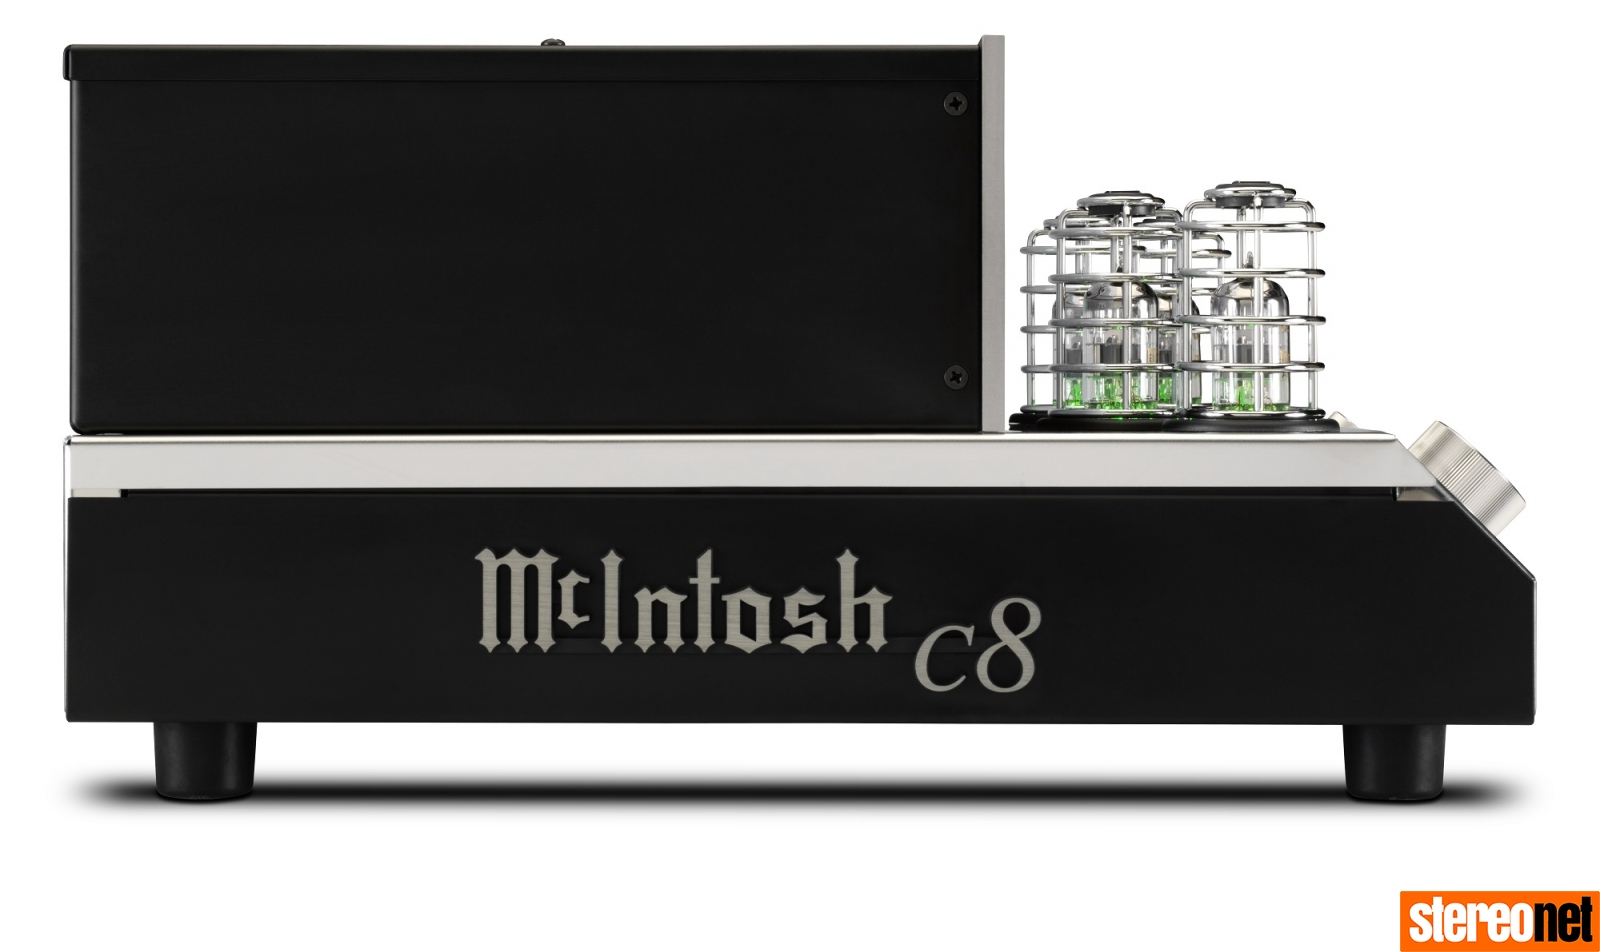 McIntosh C8 Tube Preamp